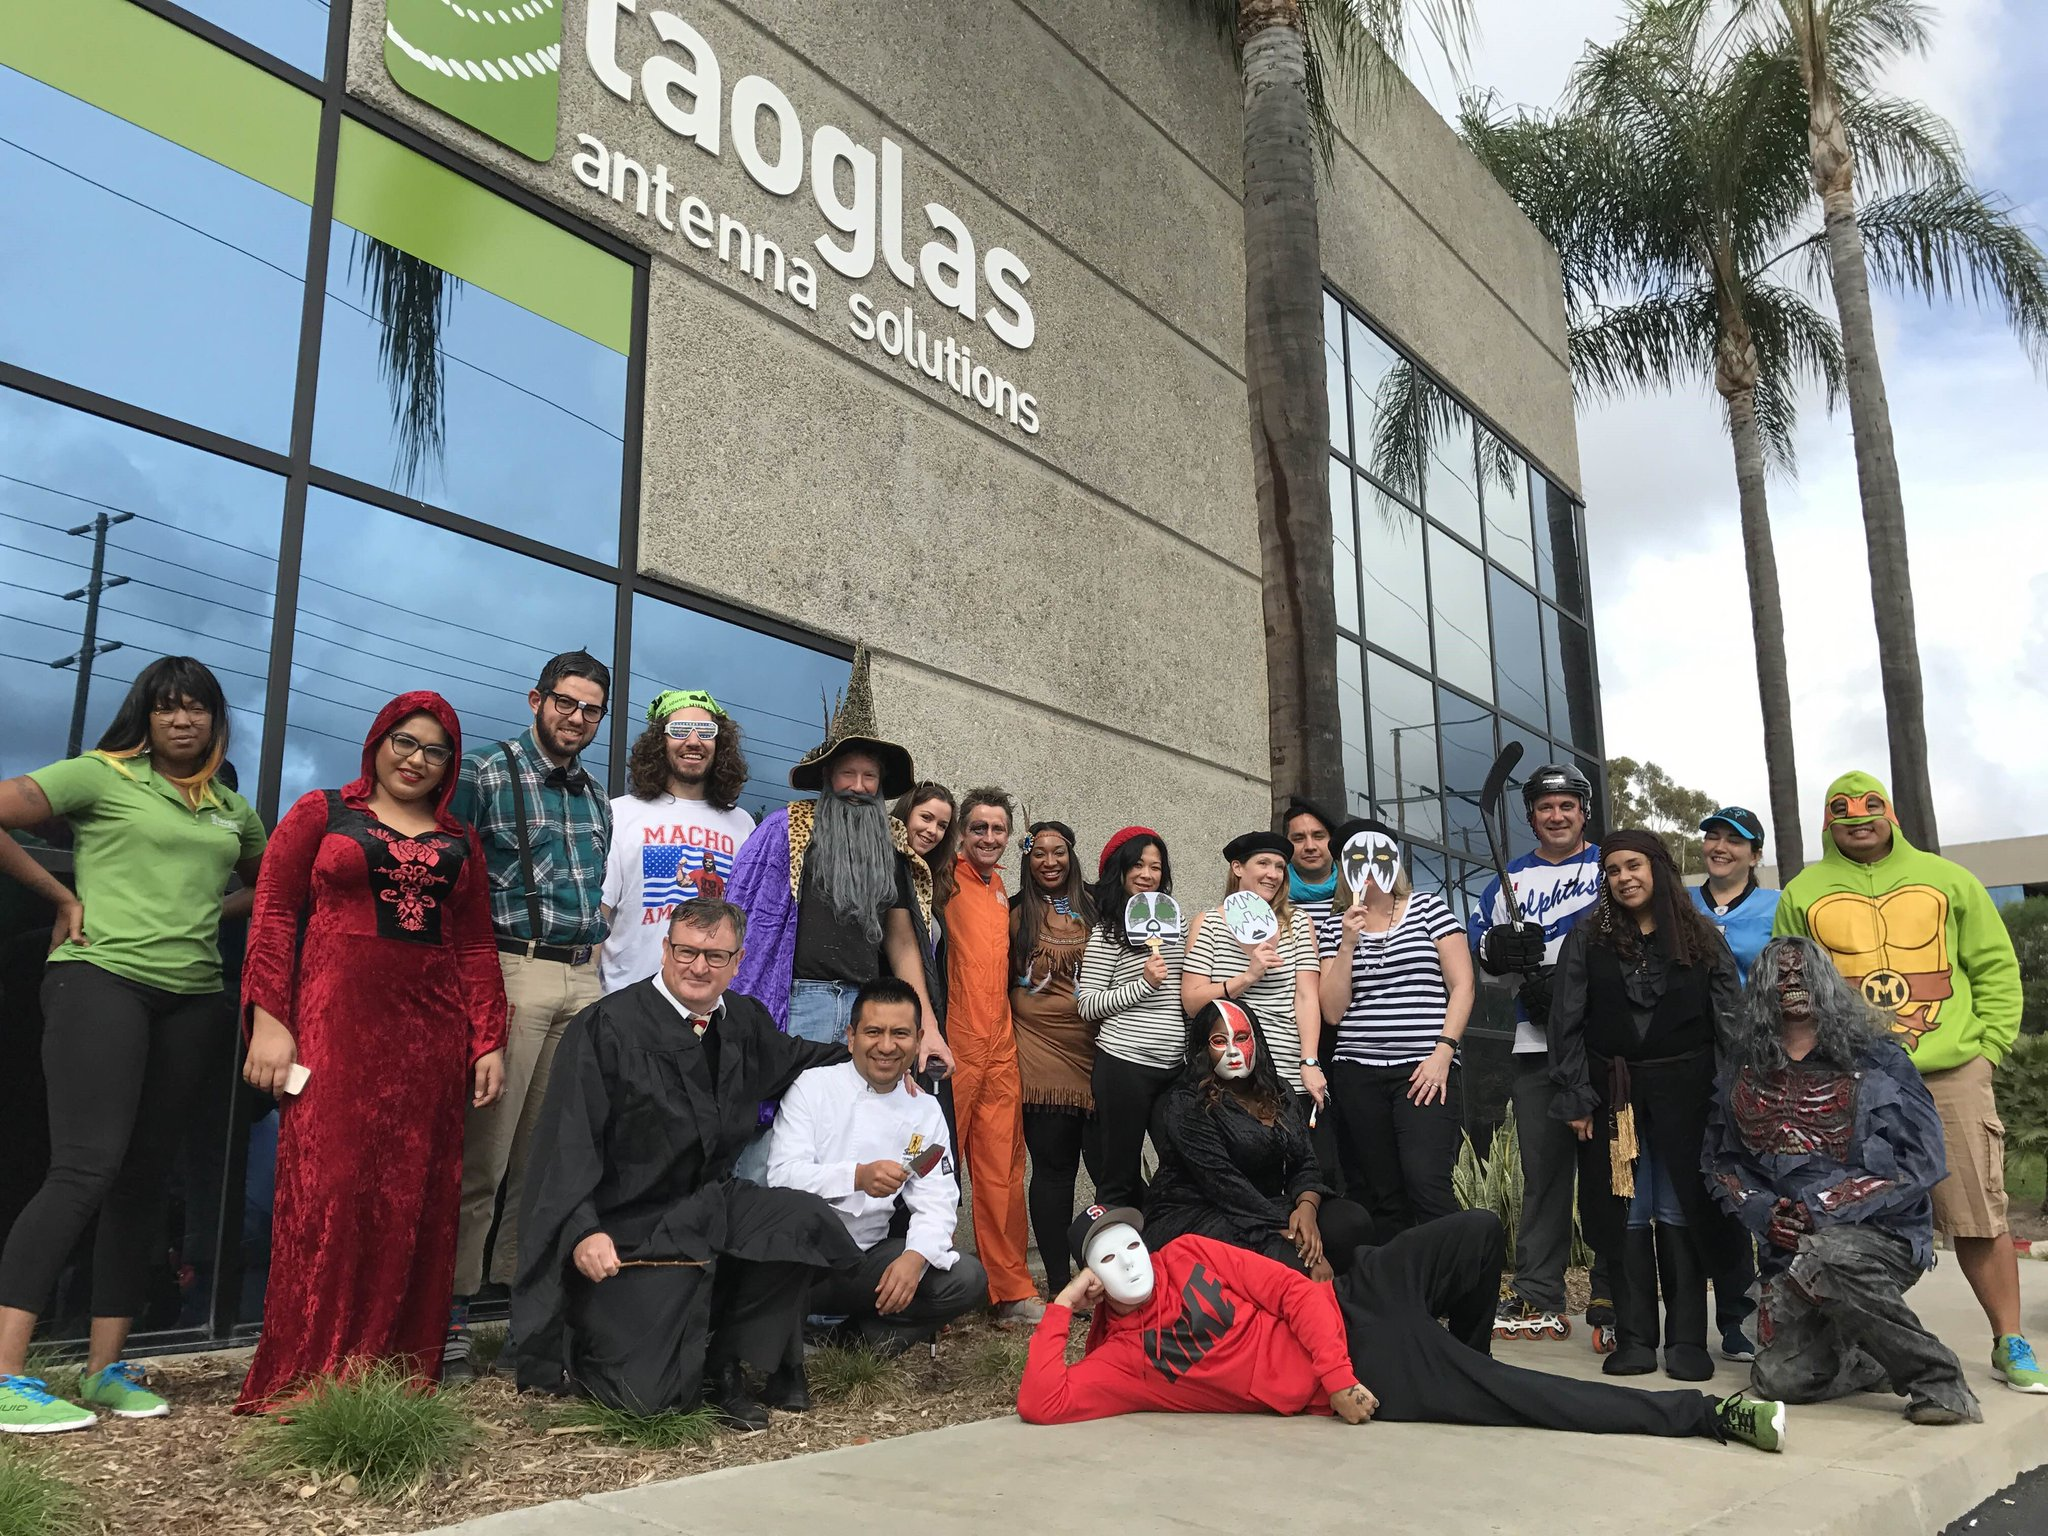 Dermot O'Shea in San Diego where Taoglas USA is Headquartered with staff at Halloween